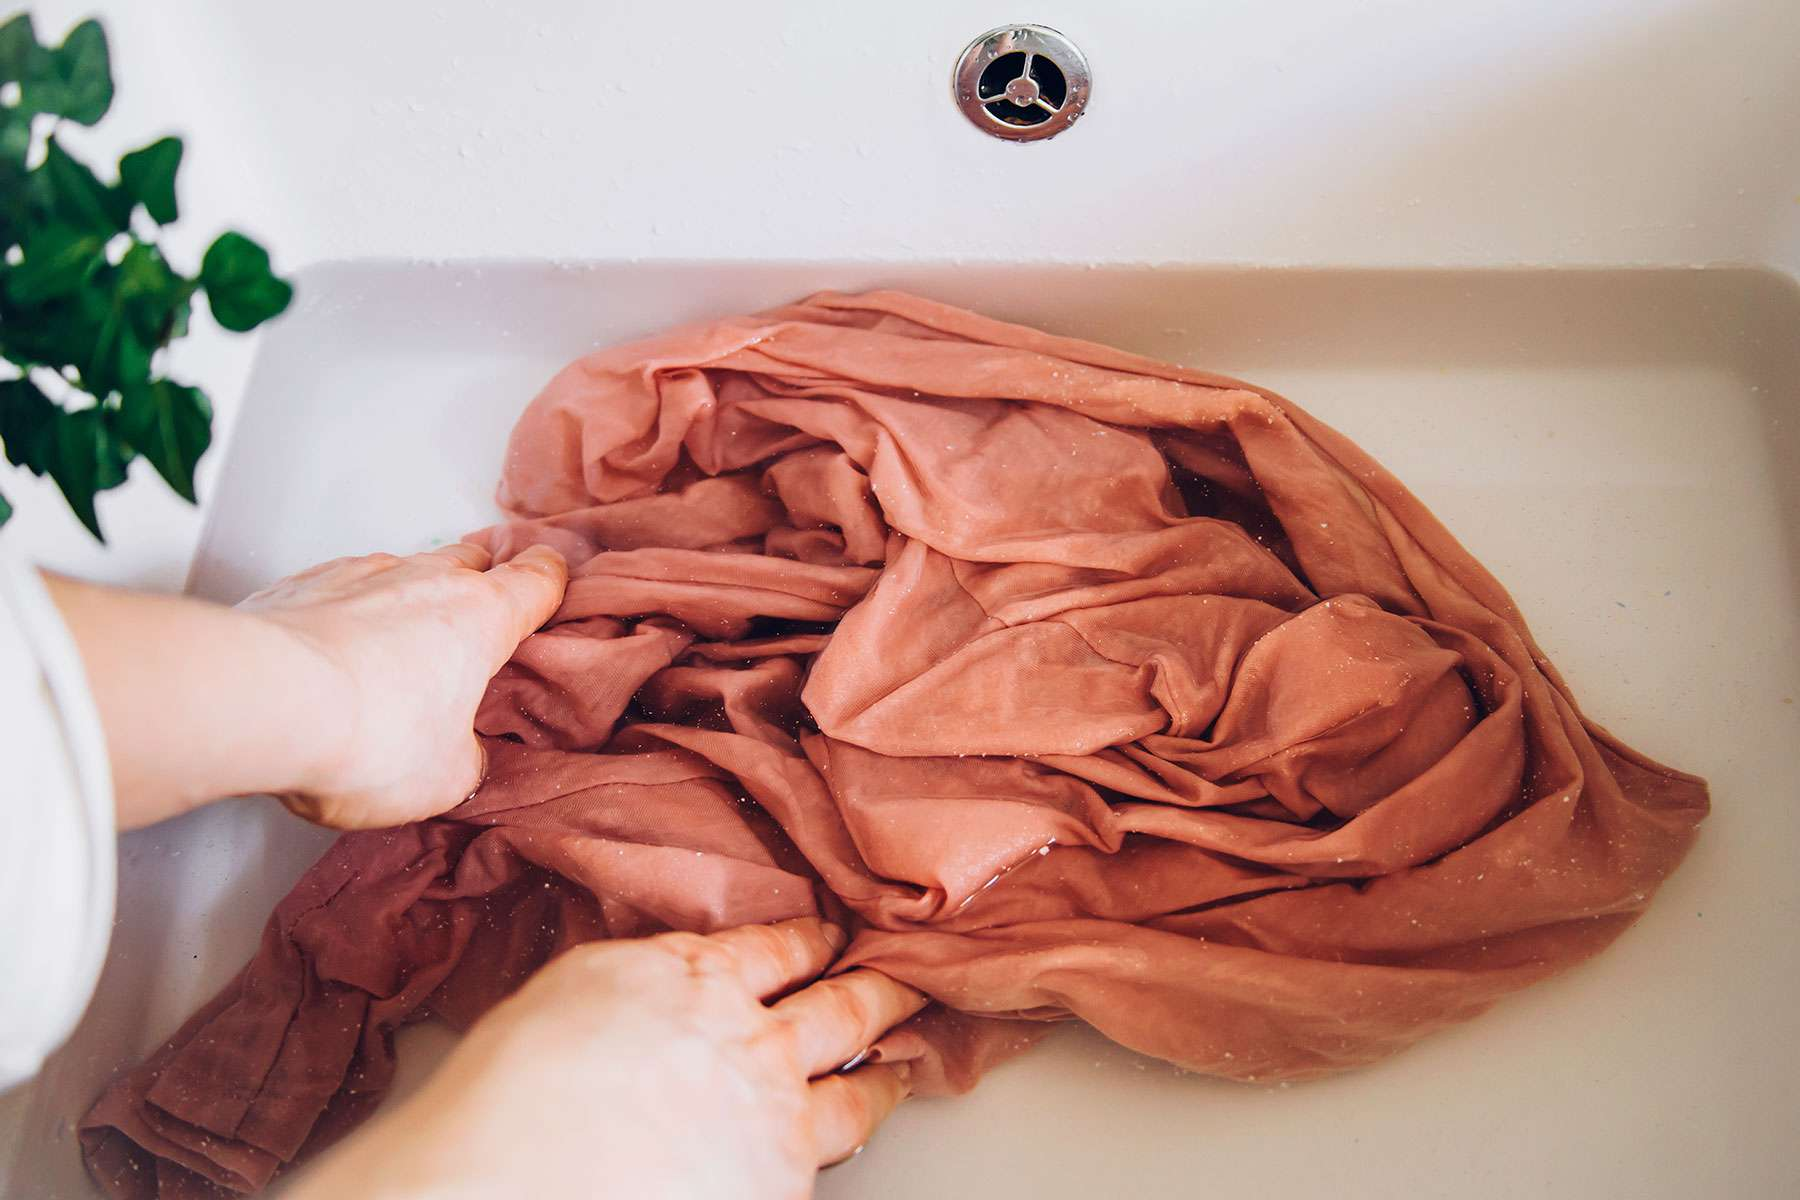 person soaking the garment in a sink